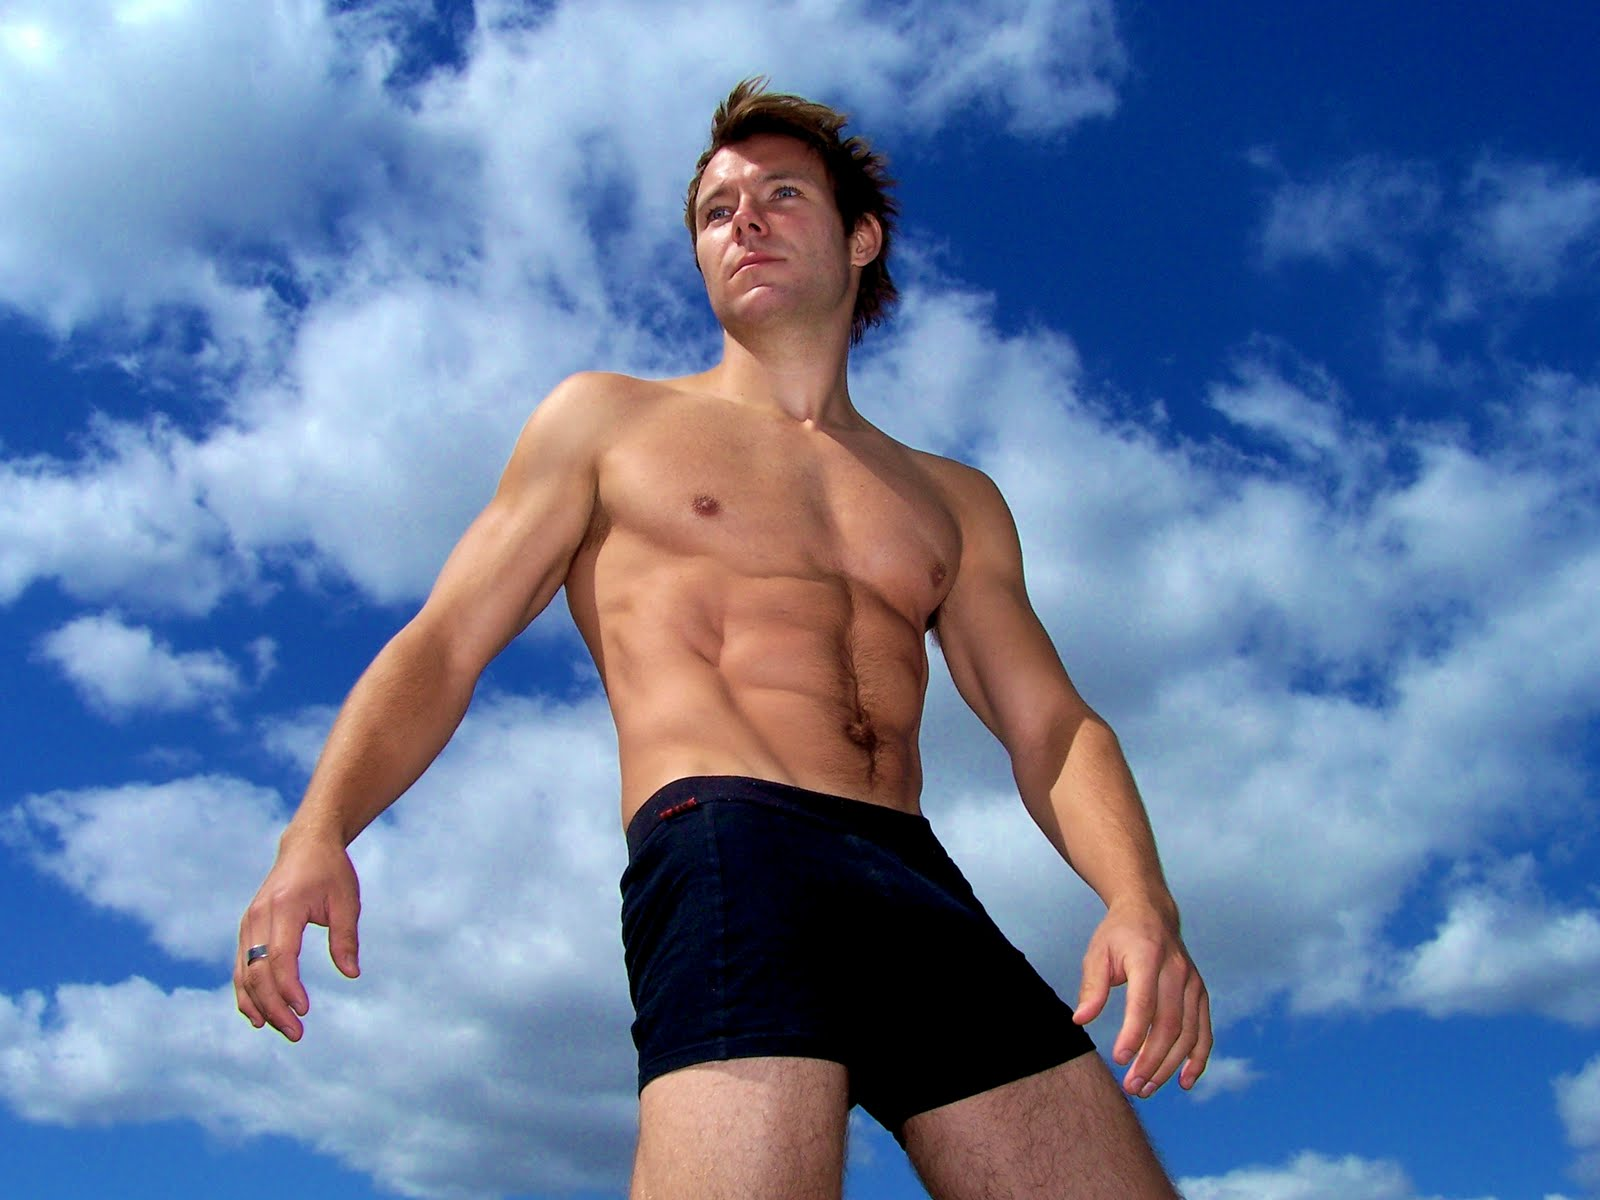 Canadian Hunk of the Day: Oh